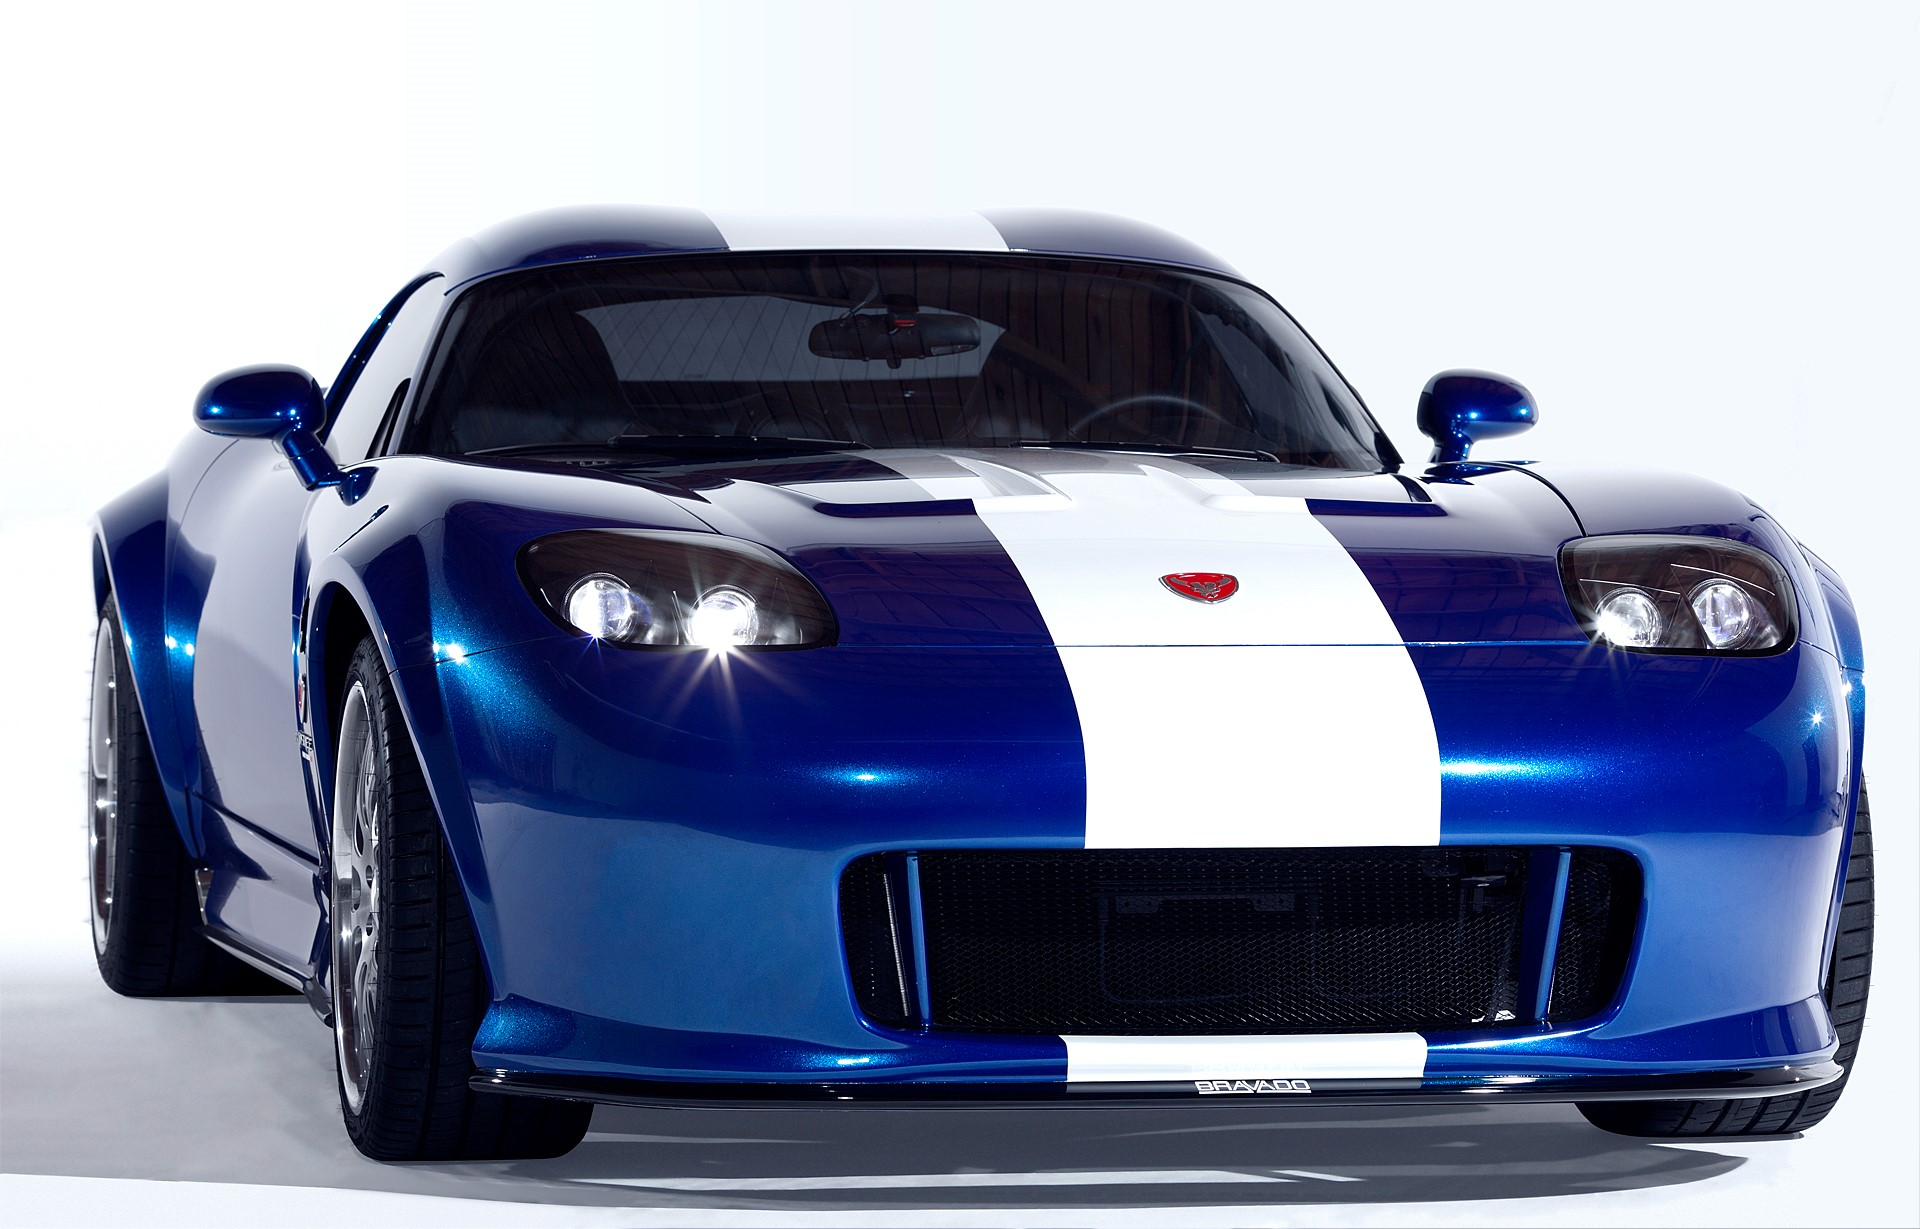 Viper-Based Bravado Banshee From Grand Theft Auto Up For ...